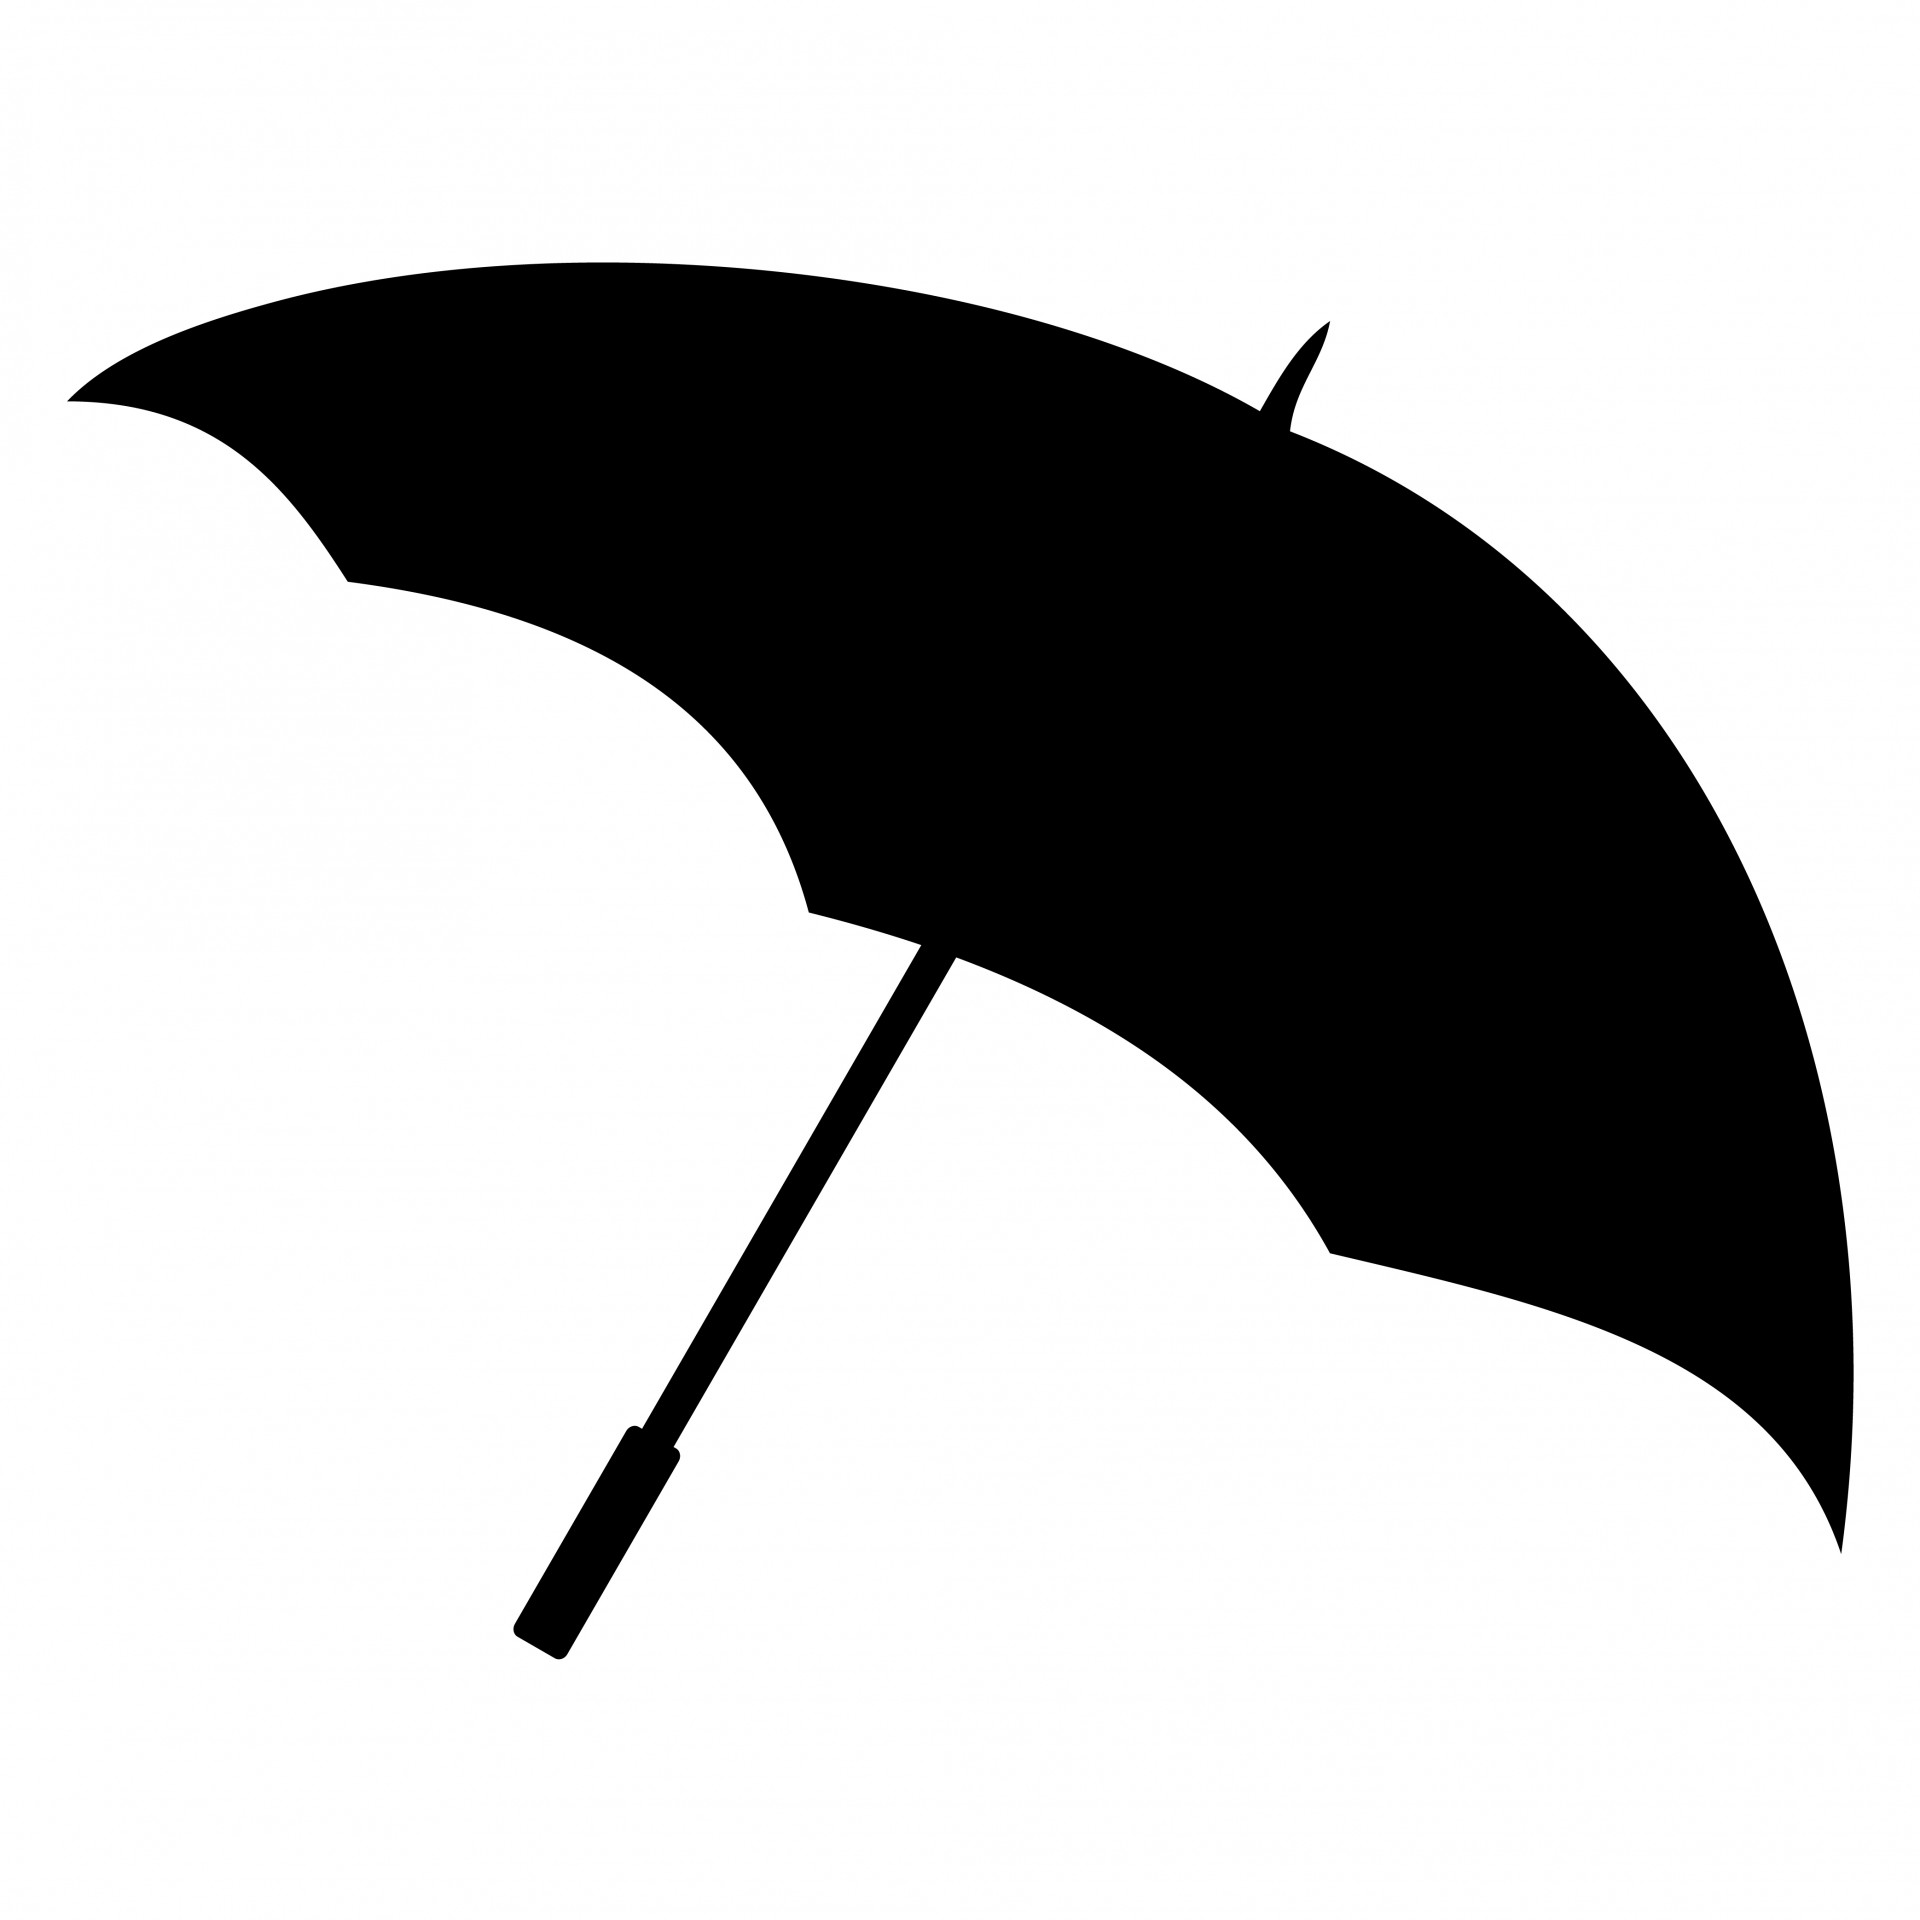 1920x1920 Umbrella Clipart Free Stock Photo